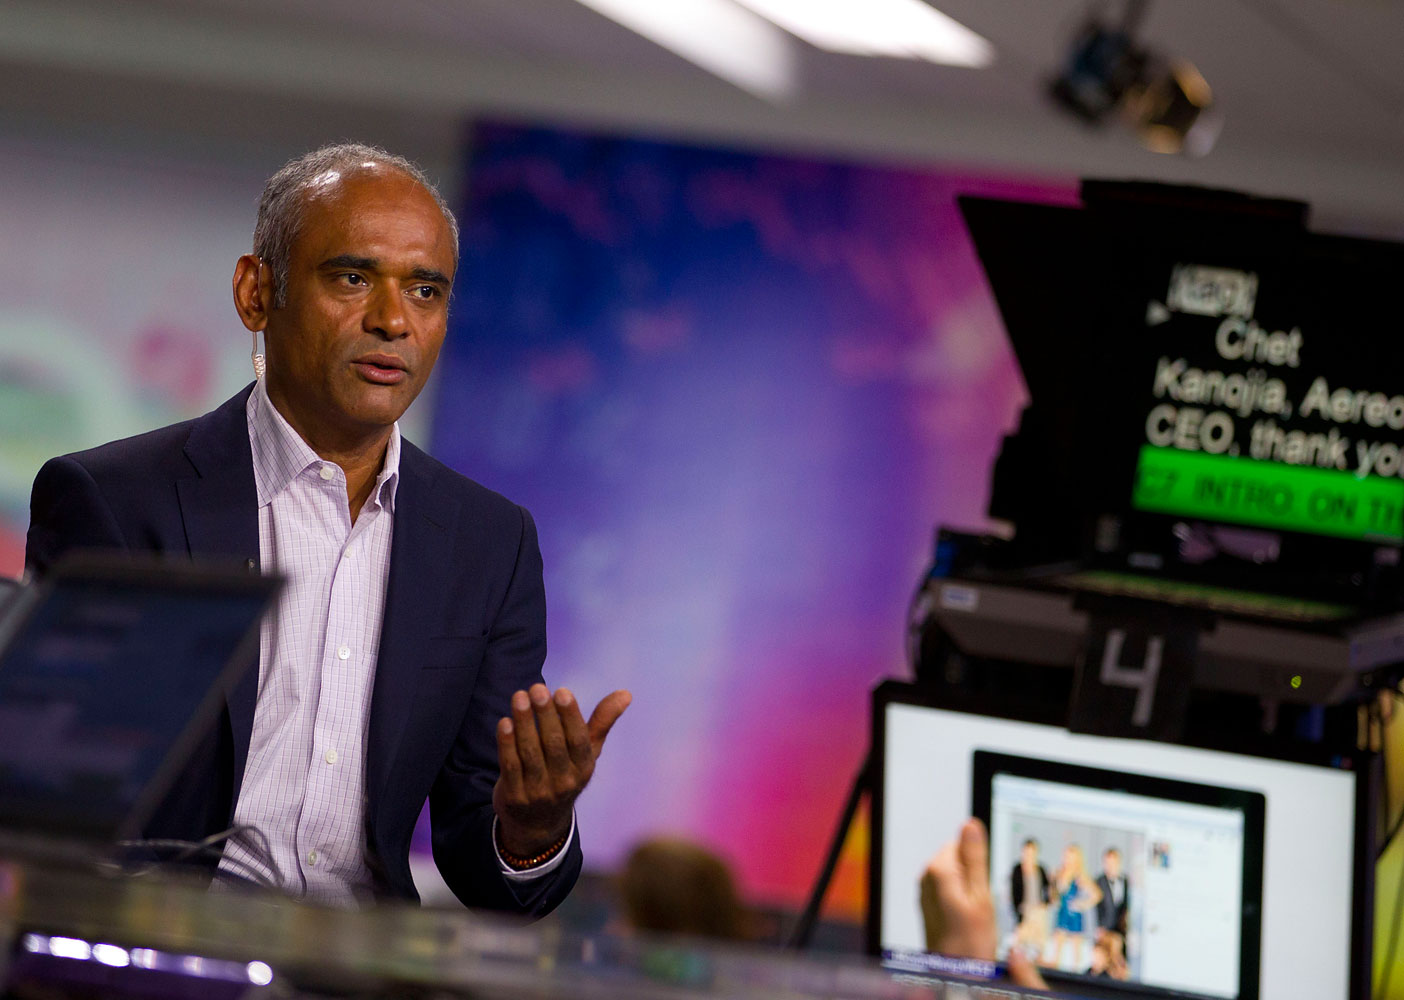 Chet Kanojia, chief executive officer and founder of Aereo Inc., speaks during a Bloomberg Television interview in New York, July 31, 2013.